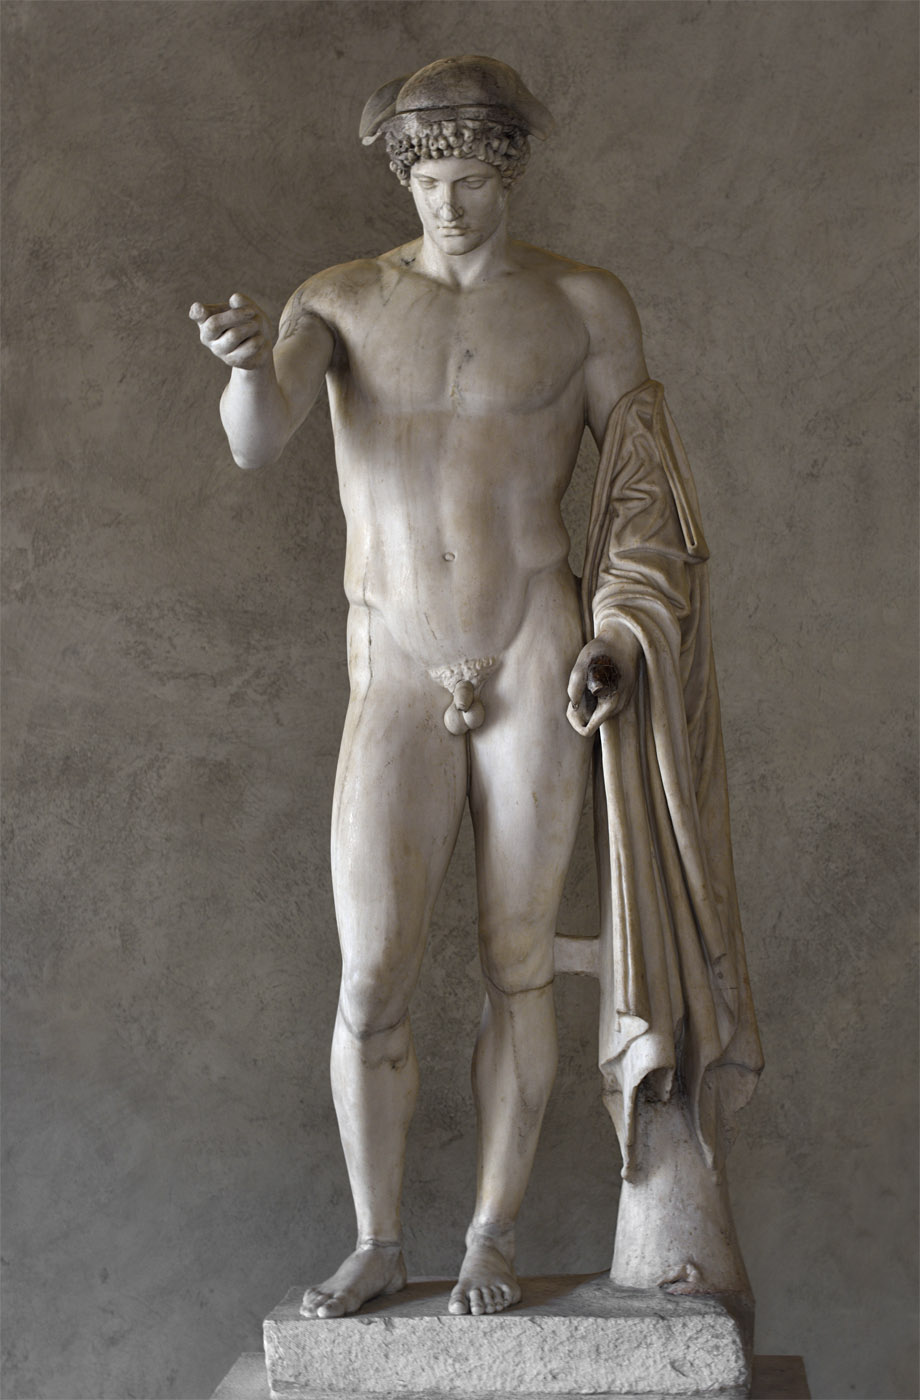 Hermes Loghios. Medium-grained (Pentelic) marble. Roman copy  2nd cent. CE after a bronze Greek original of the 5th cent. BCE ascribed to Phidias. H. 183 cm. Inv. No. 8624. Rome, Roman National Museum, Palazzo Altemps